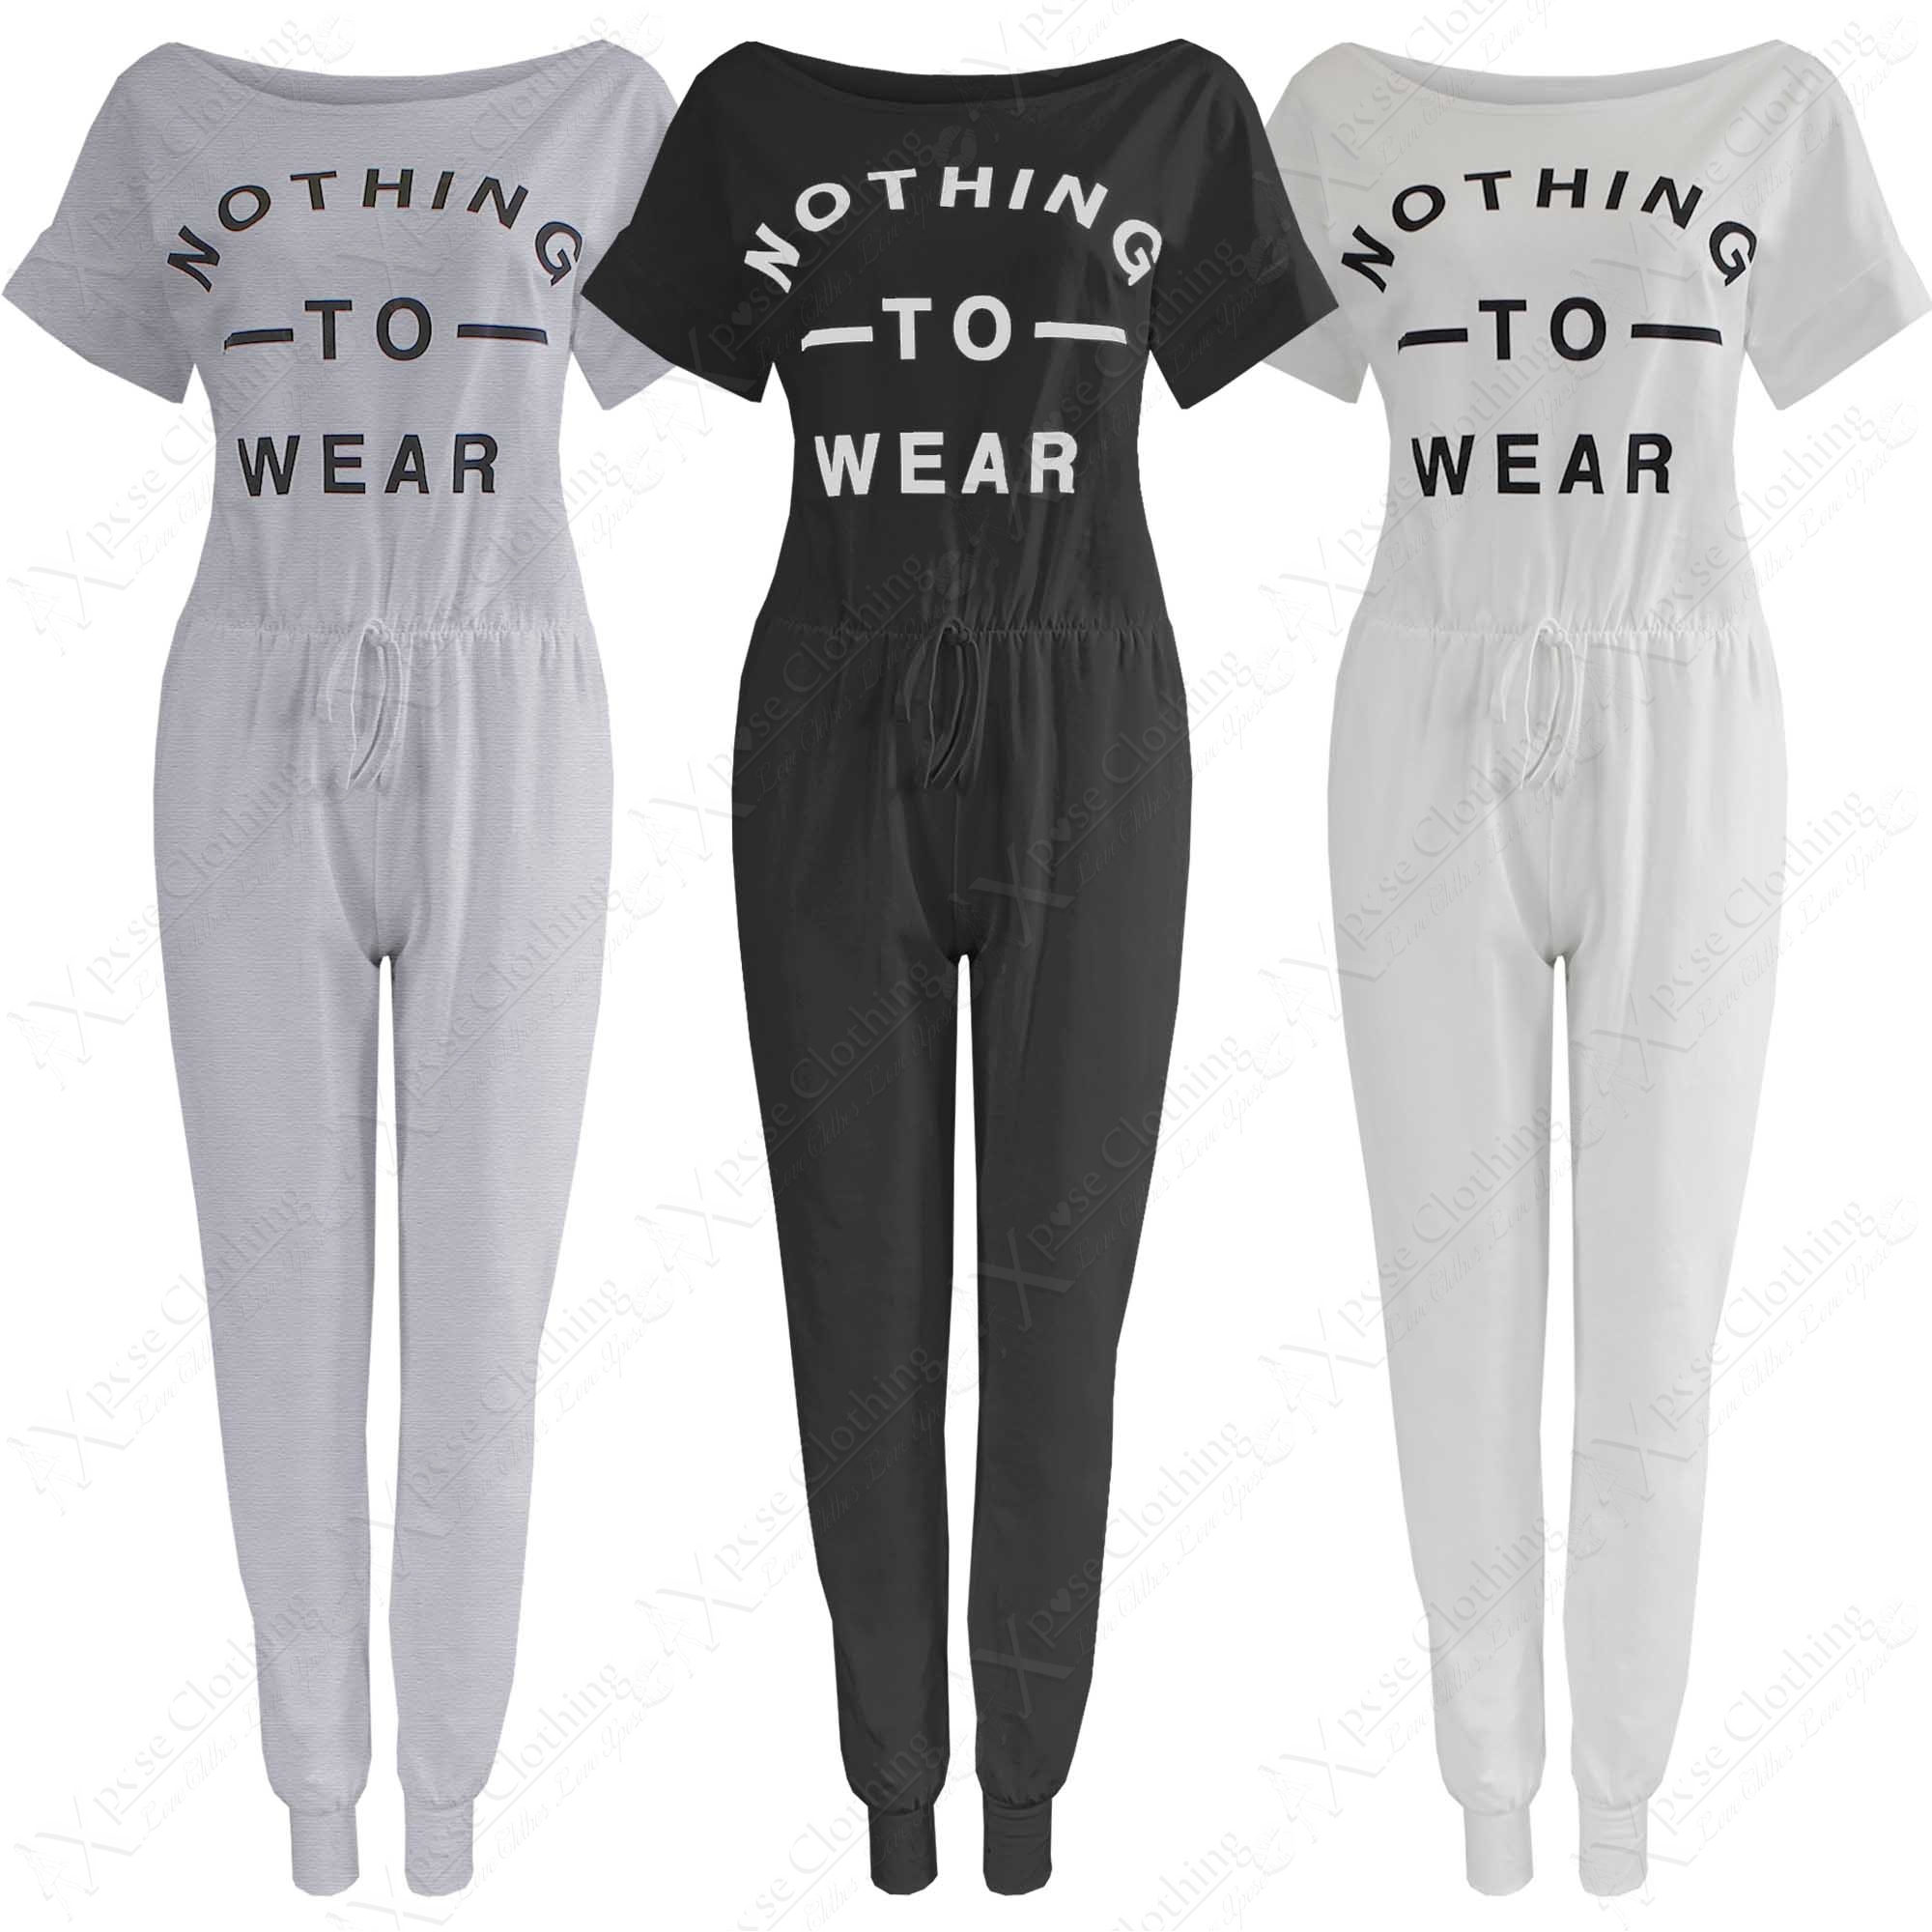 NEW LADIES NOTHING TO WEAR JUMPSUIT WOMEN JERSEY ONESIE ALL IN ONE ...